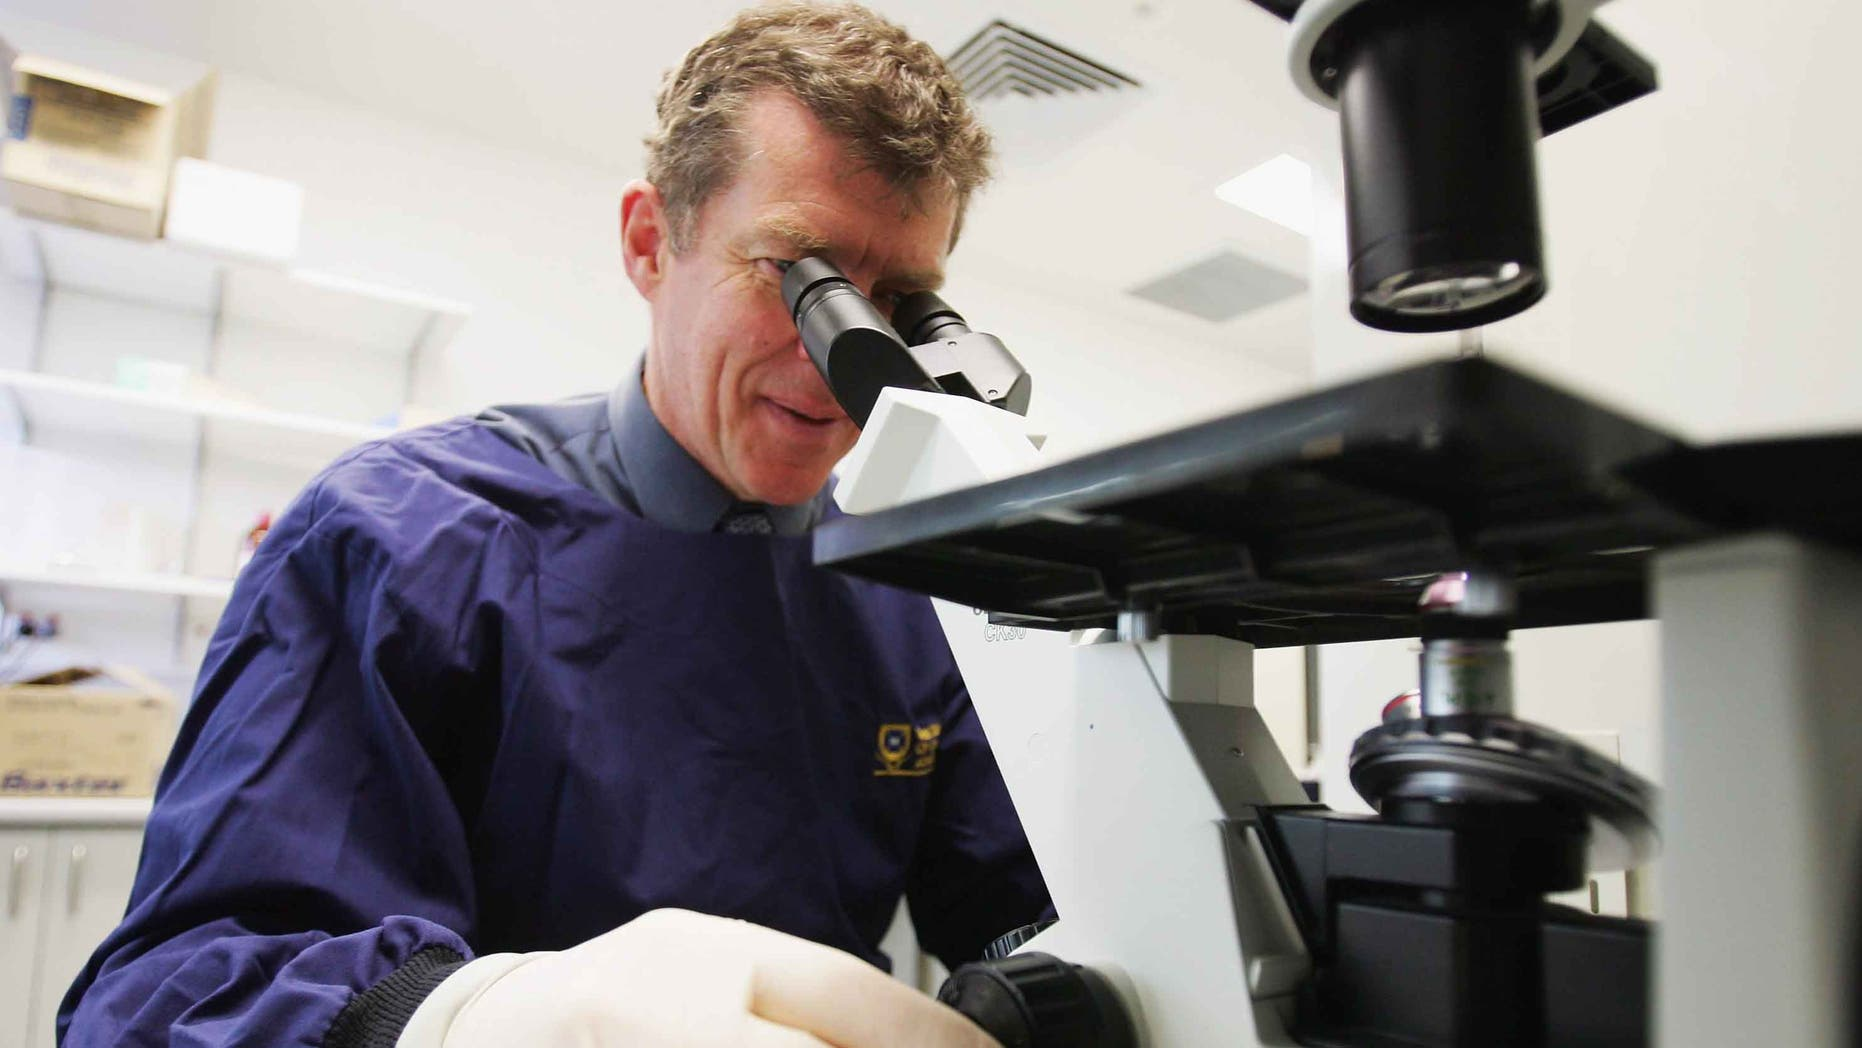 BRISBANE, QSL - AUGUST 12:  Professor Ian Frazer is pictured at work in a bio medical laboratory at the PA Hospital in Brisbane, Australia on August 12, 2005. Professor Frazer has developed a vaccine to prevent cervical cancer which in clinical trials showed the vaccine to be 95 to 100 per cent effective. The vaccine is expected to be commercially available in 2006. Cervical cancer is one of the few human cancers that is known to be directly caused by a viral infection, with more than 500,000 cases being diagnosed annually killing an estimated 275,000 women around the world every year.  (Photo by Jonathan Wood/Getty Images) *** Local Caption *** Ian Frazer